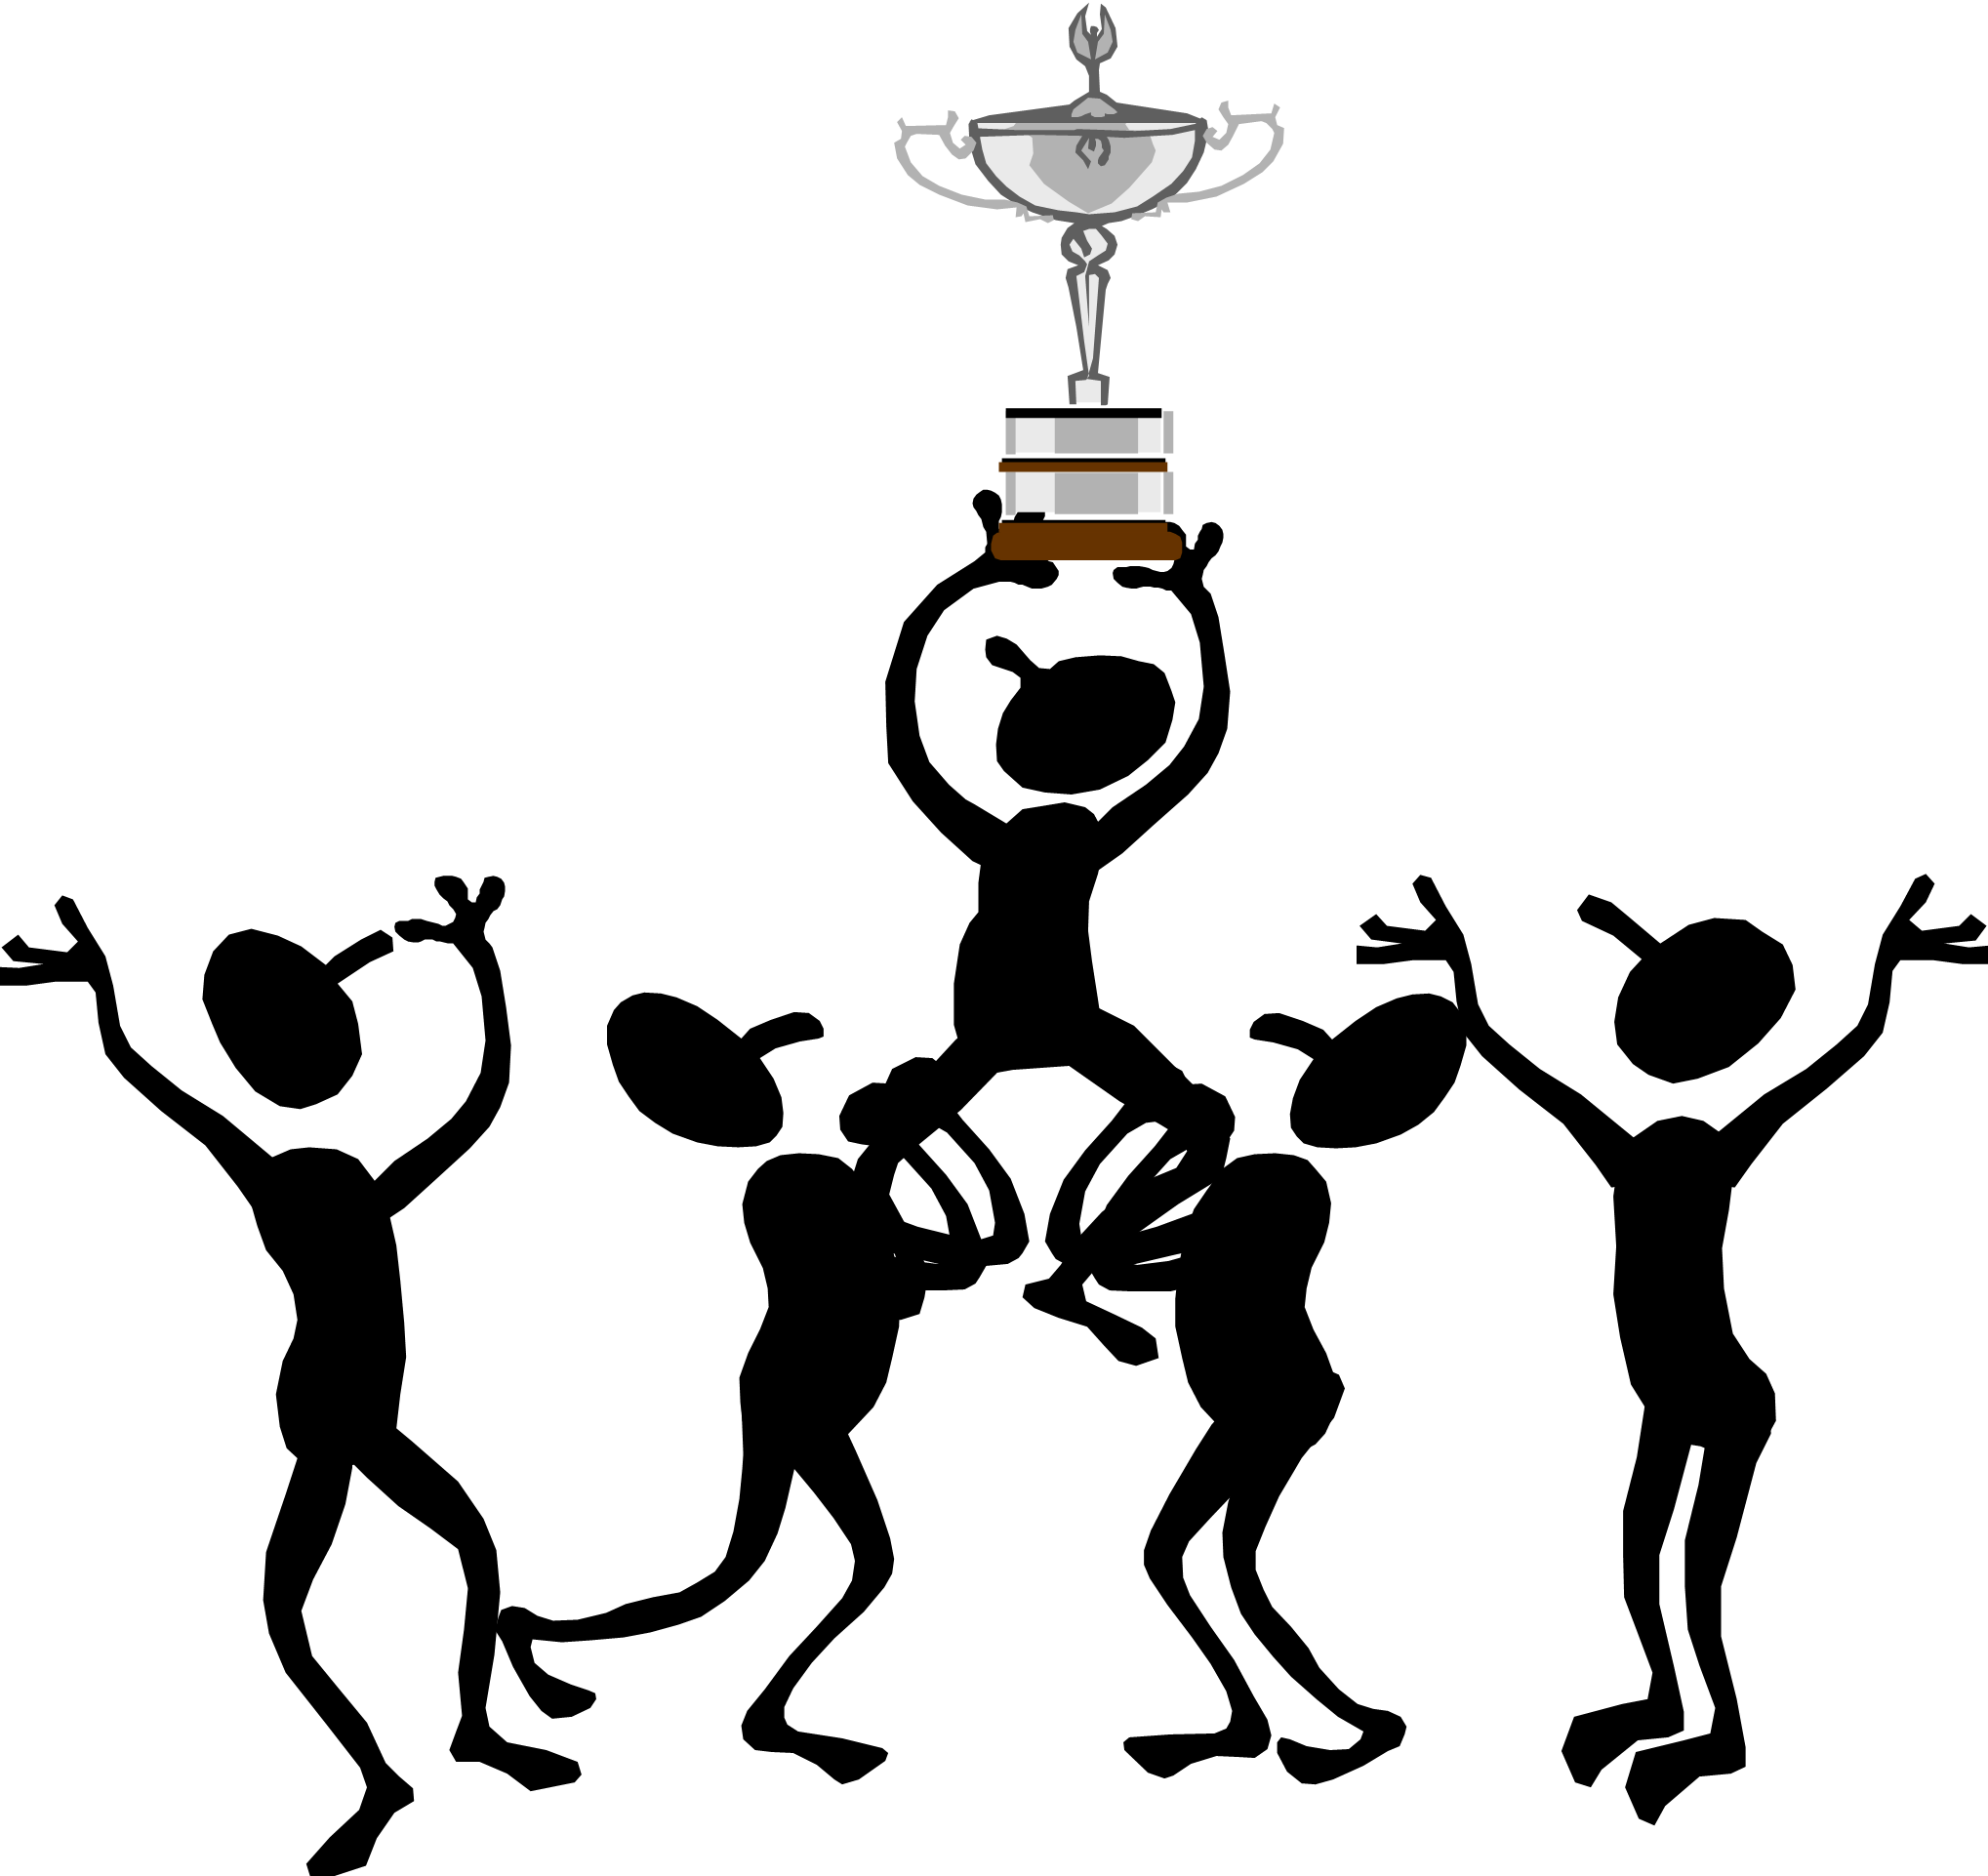 Winning Team Trophy Free Cliparts That You Can Download To You